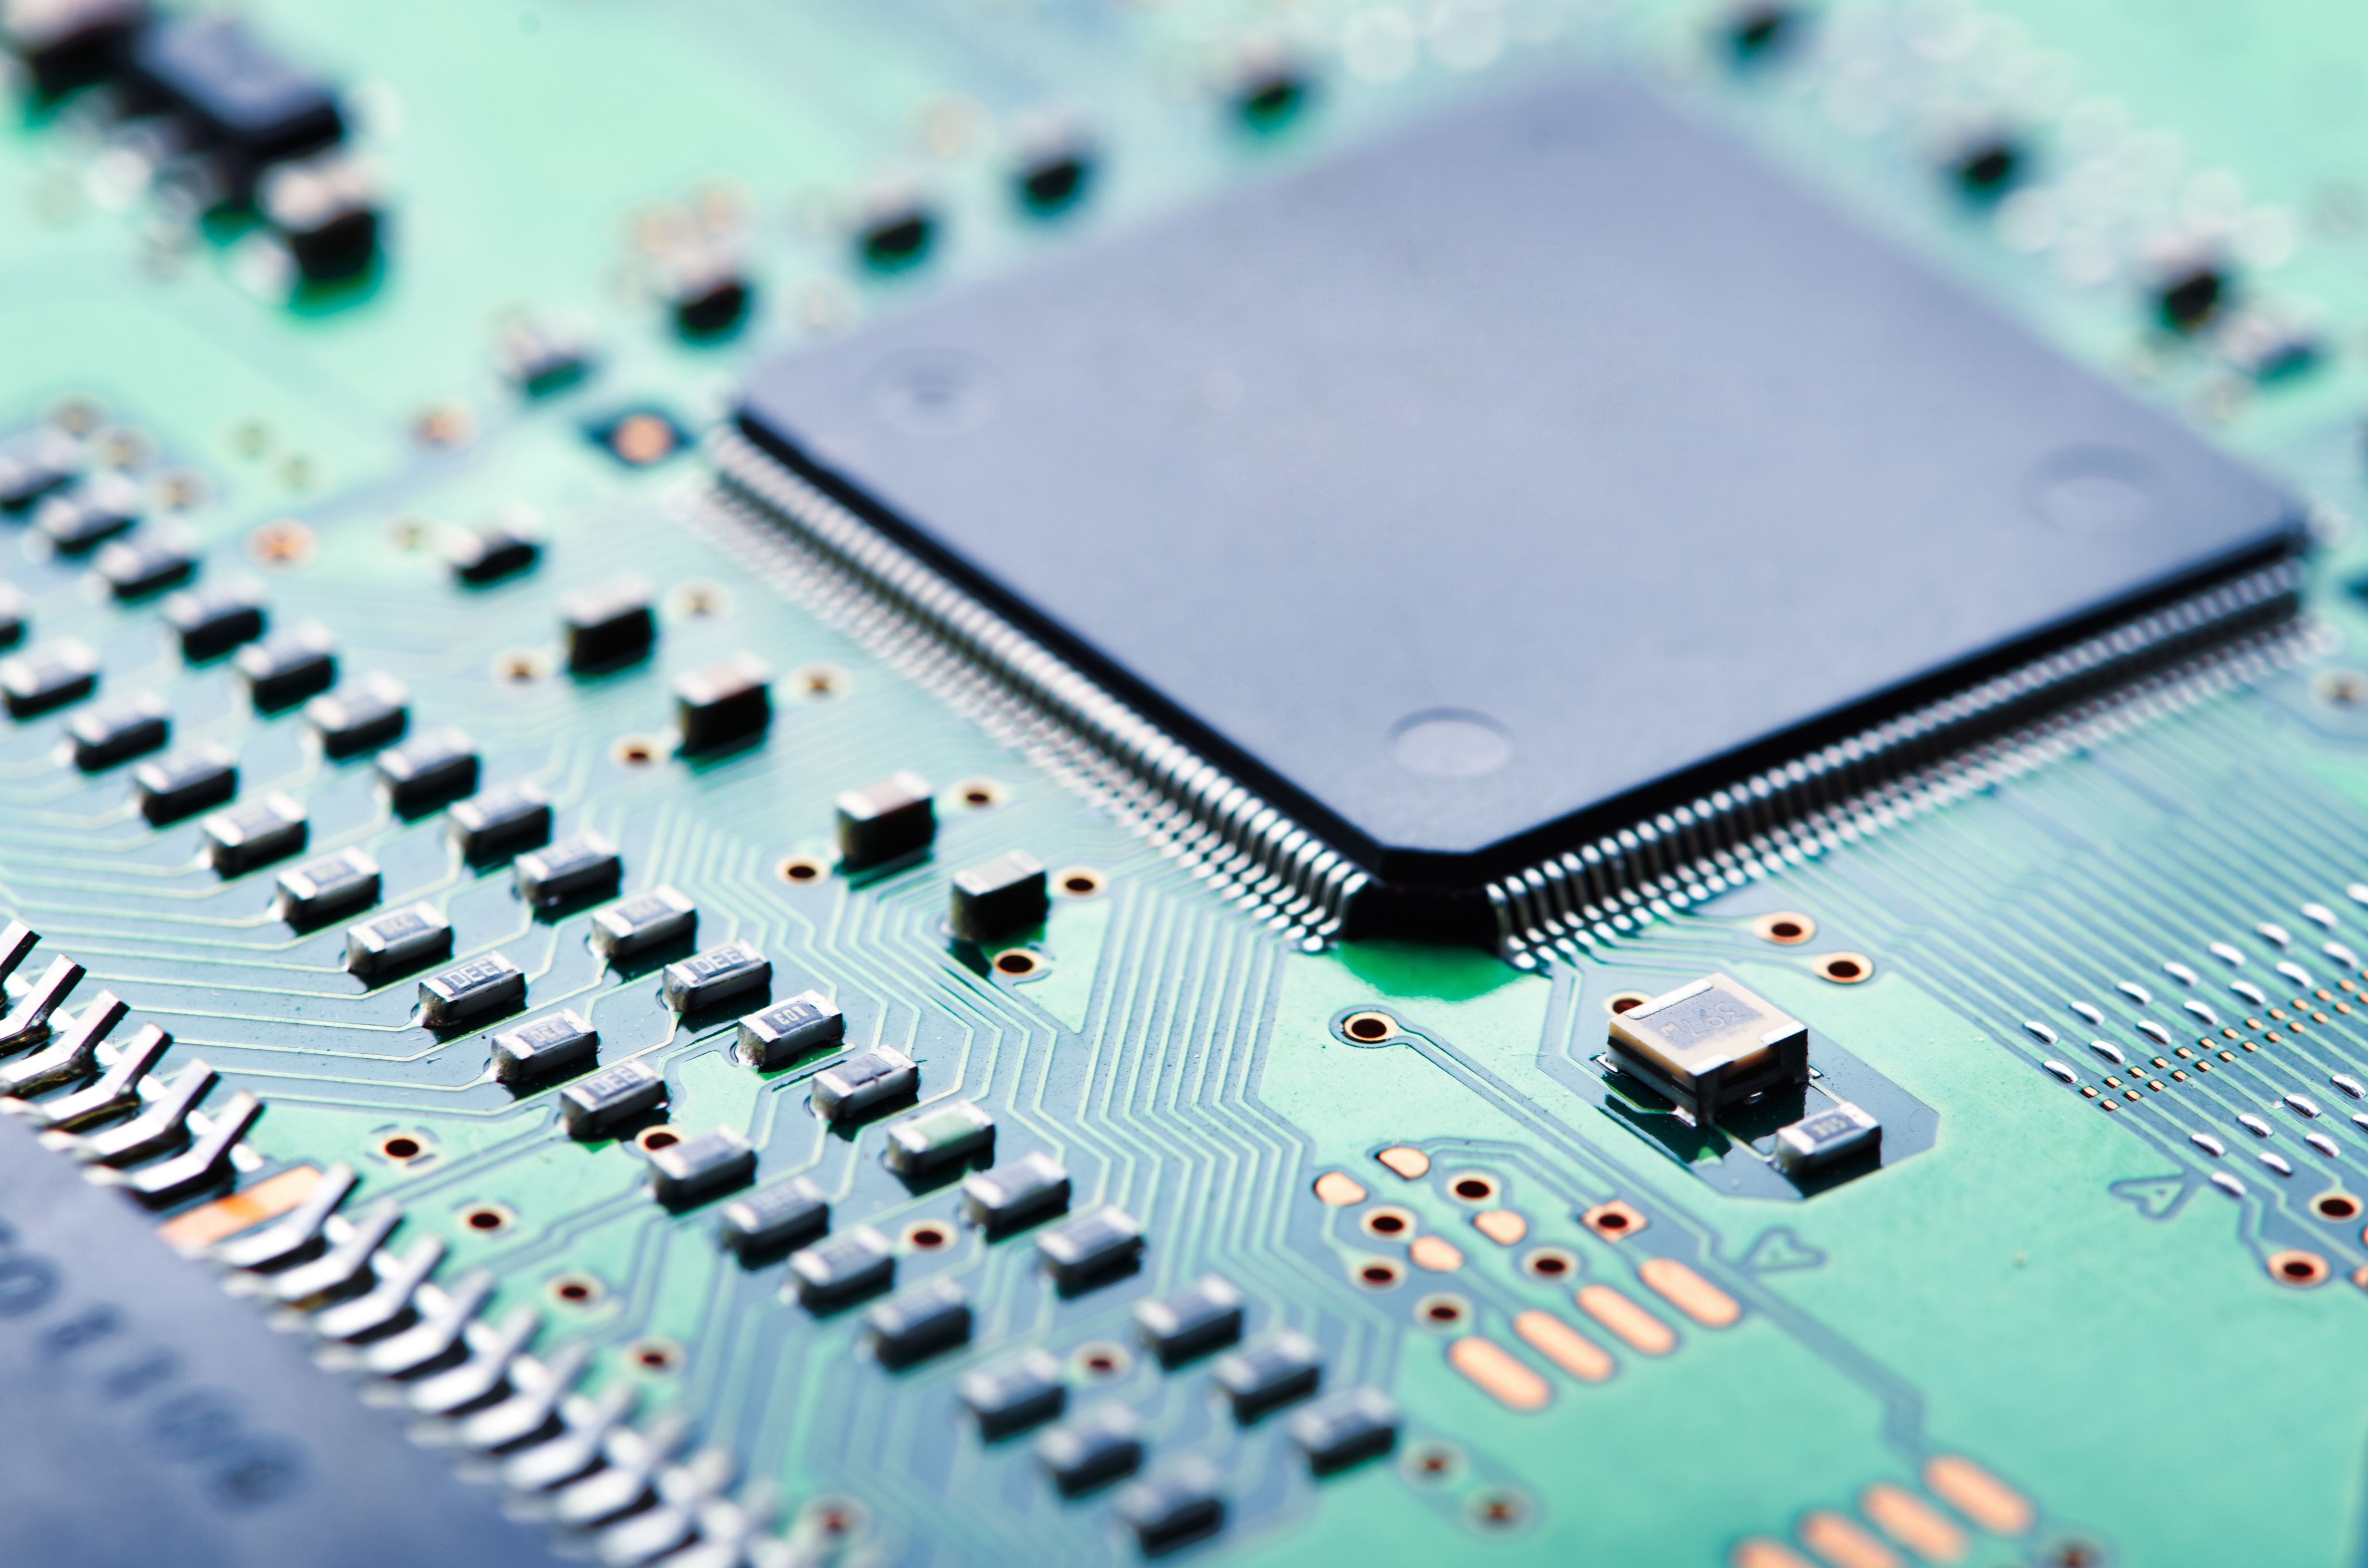 Computer Science Oriel College Circuit Board With Electronic Components Inside A Stock Photo